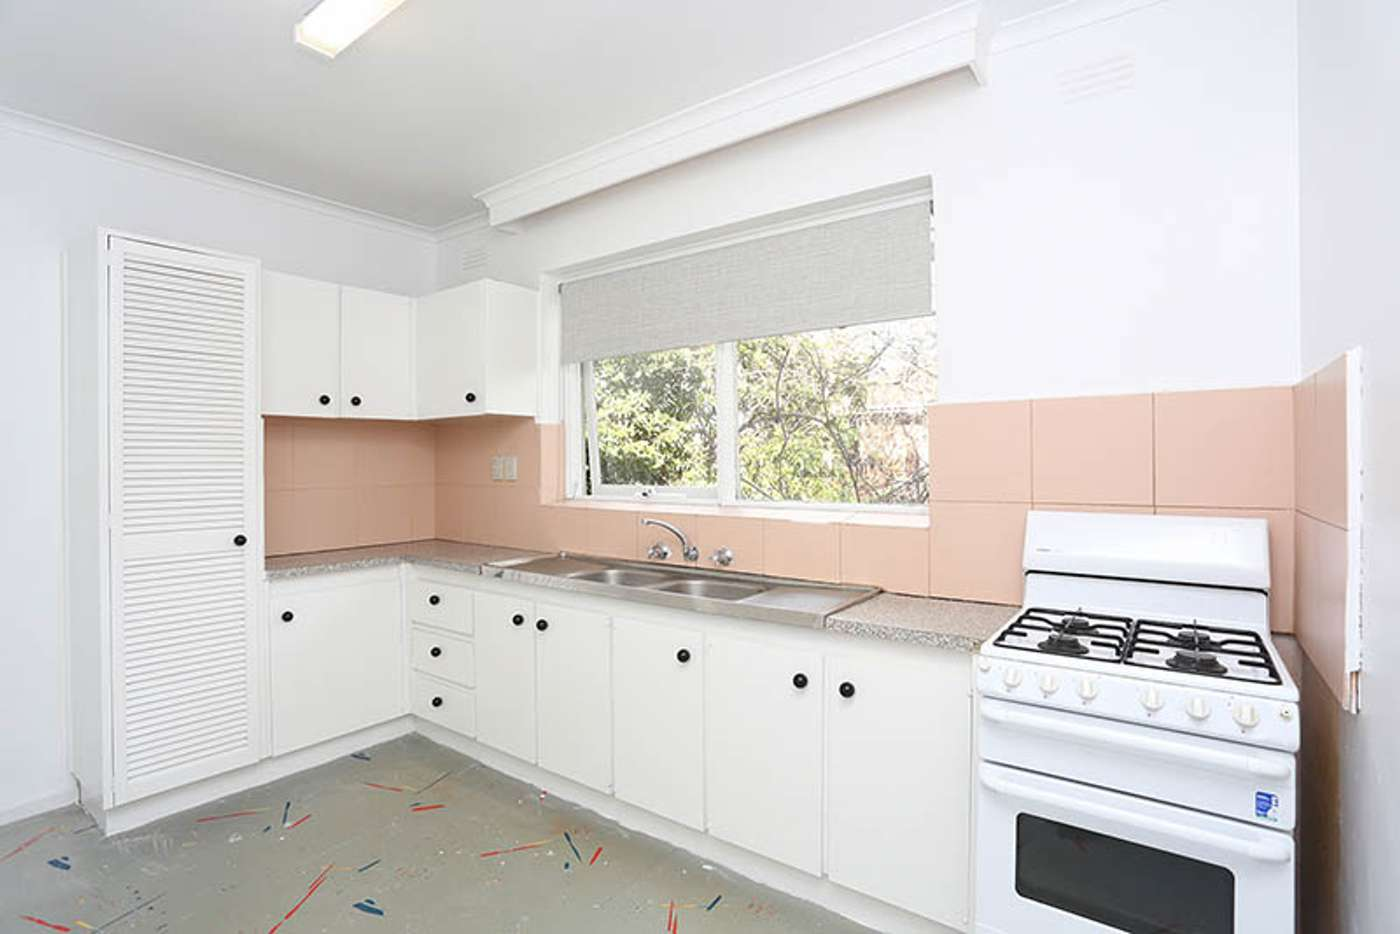 Main view of Homely unit listing, 8/8 Burke Road, Malvern East VIC 3145